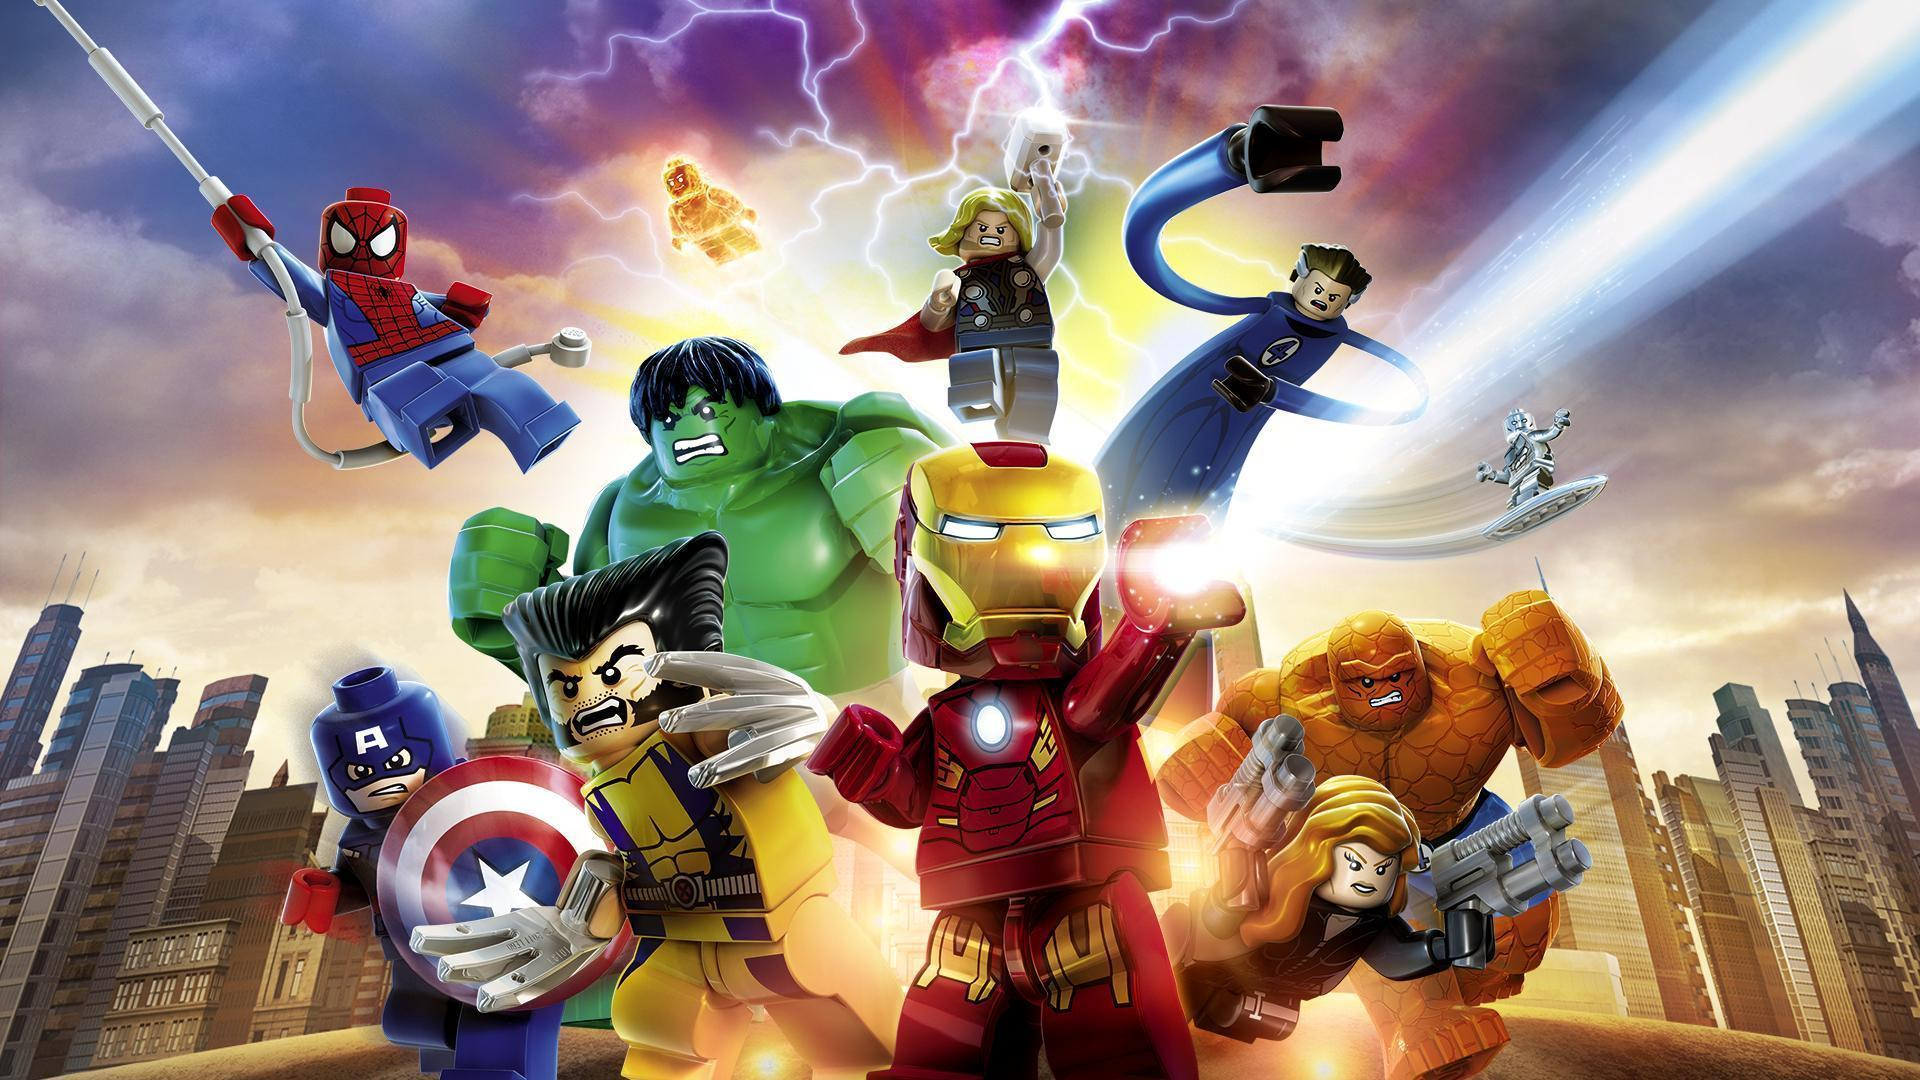 Lego Marvel Super Heroes Wallpapers Top Free Lego Marvel